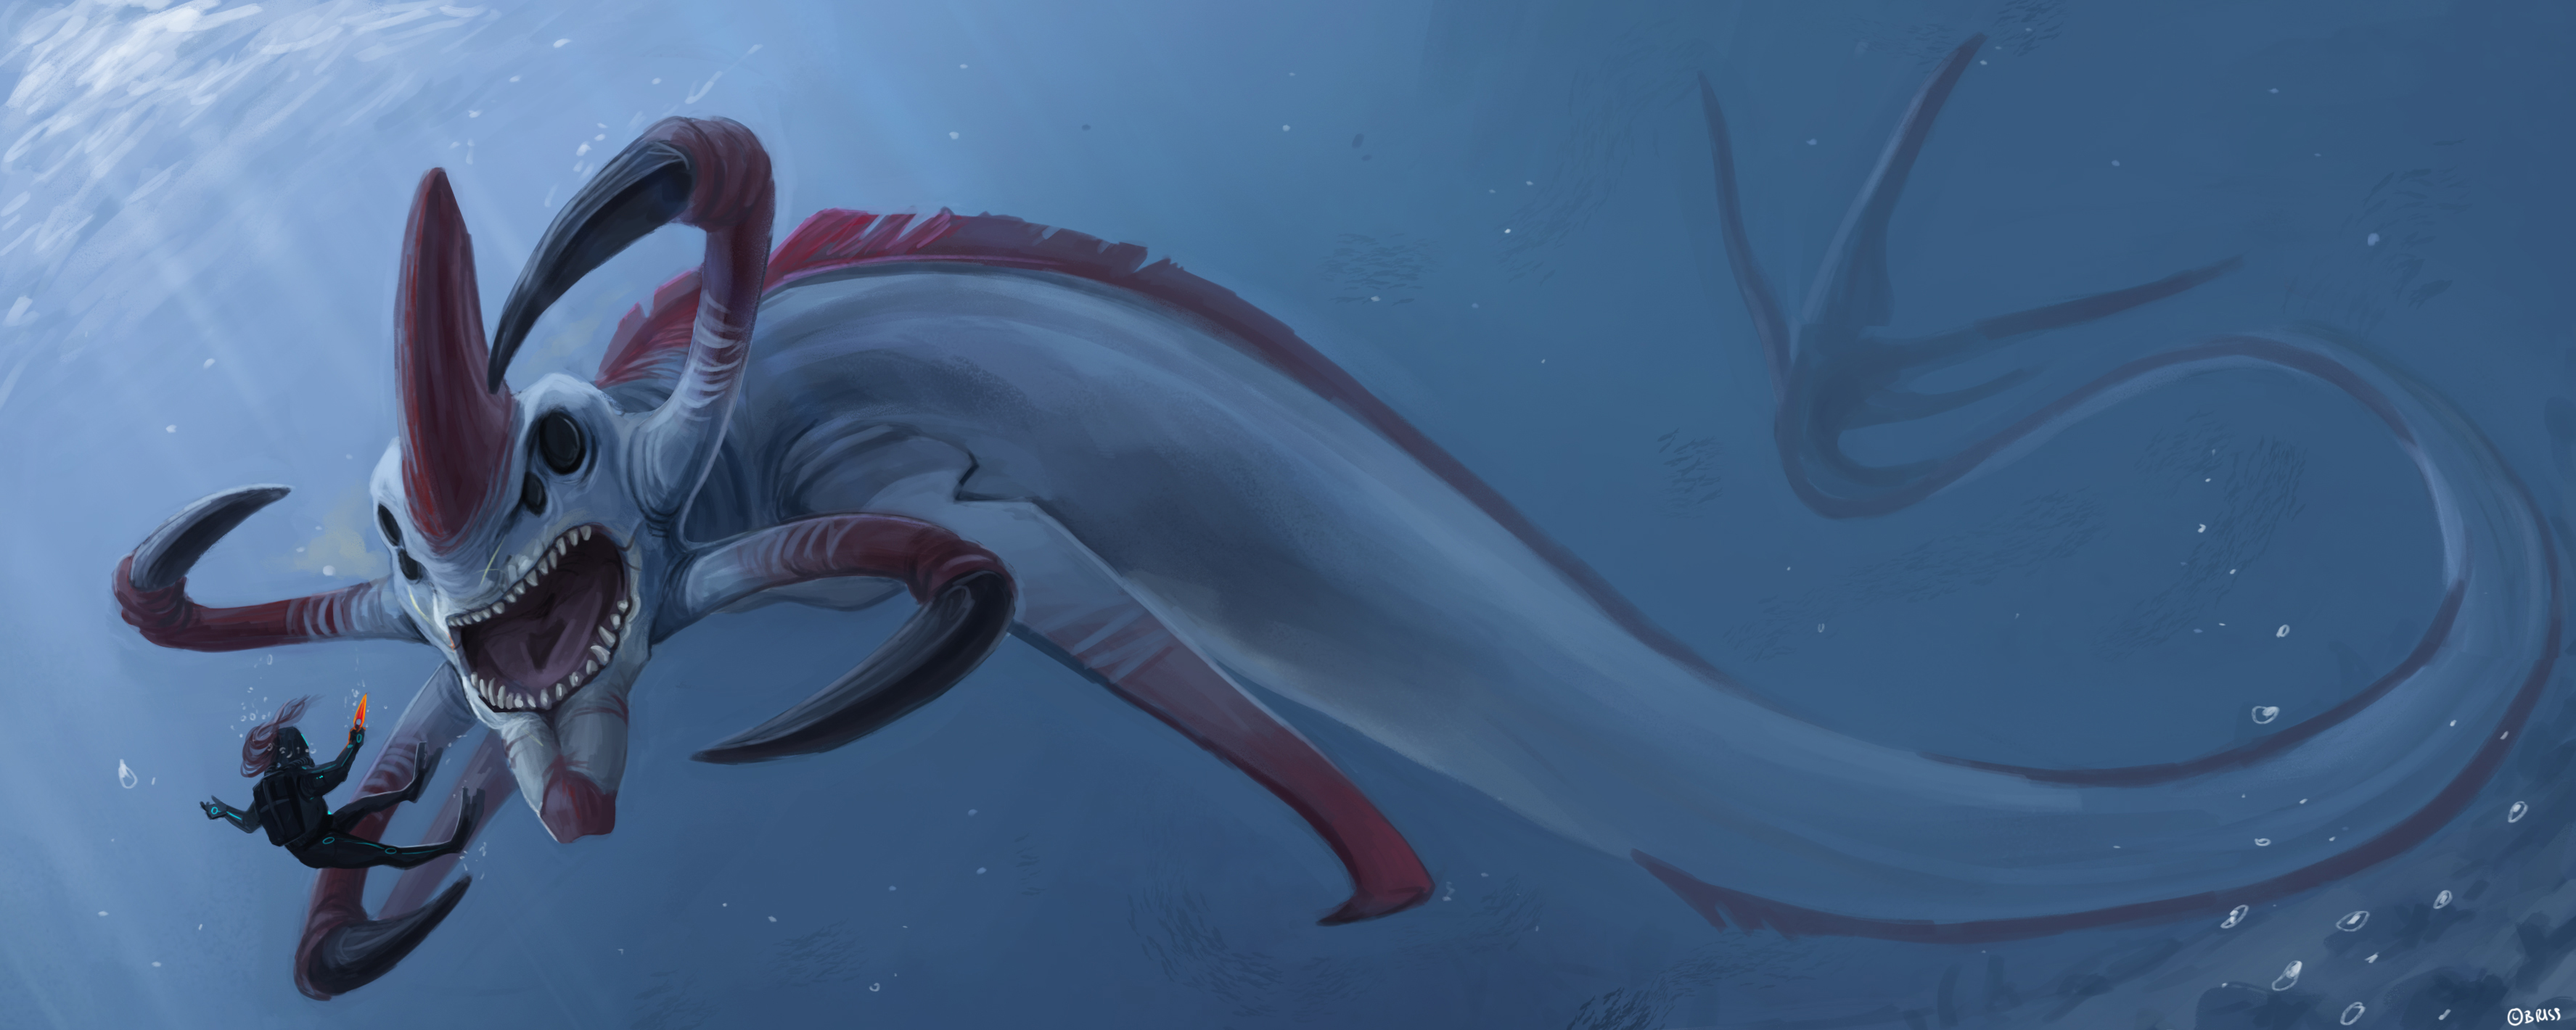 Subnautica Game Wallpapers Wallpapers - All Superior Subnautica Game Wallpapers Backgrounds ...